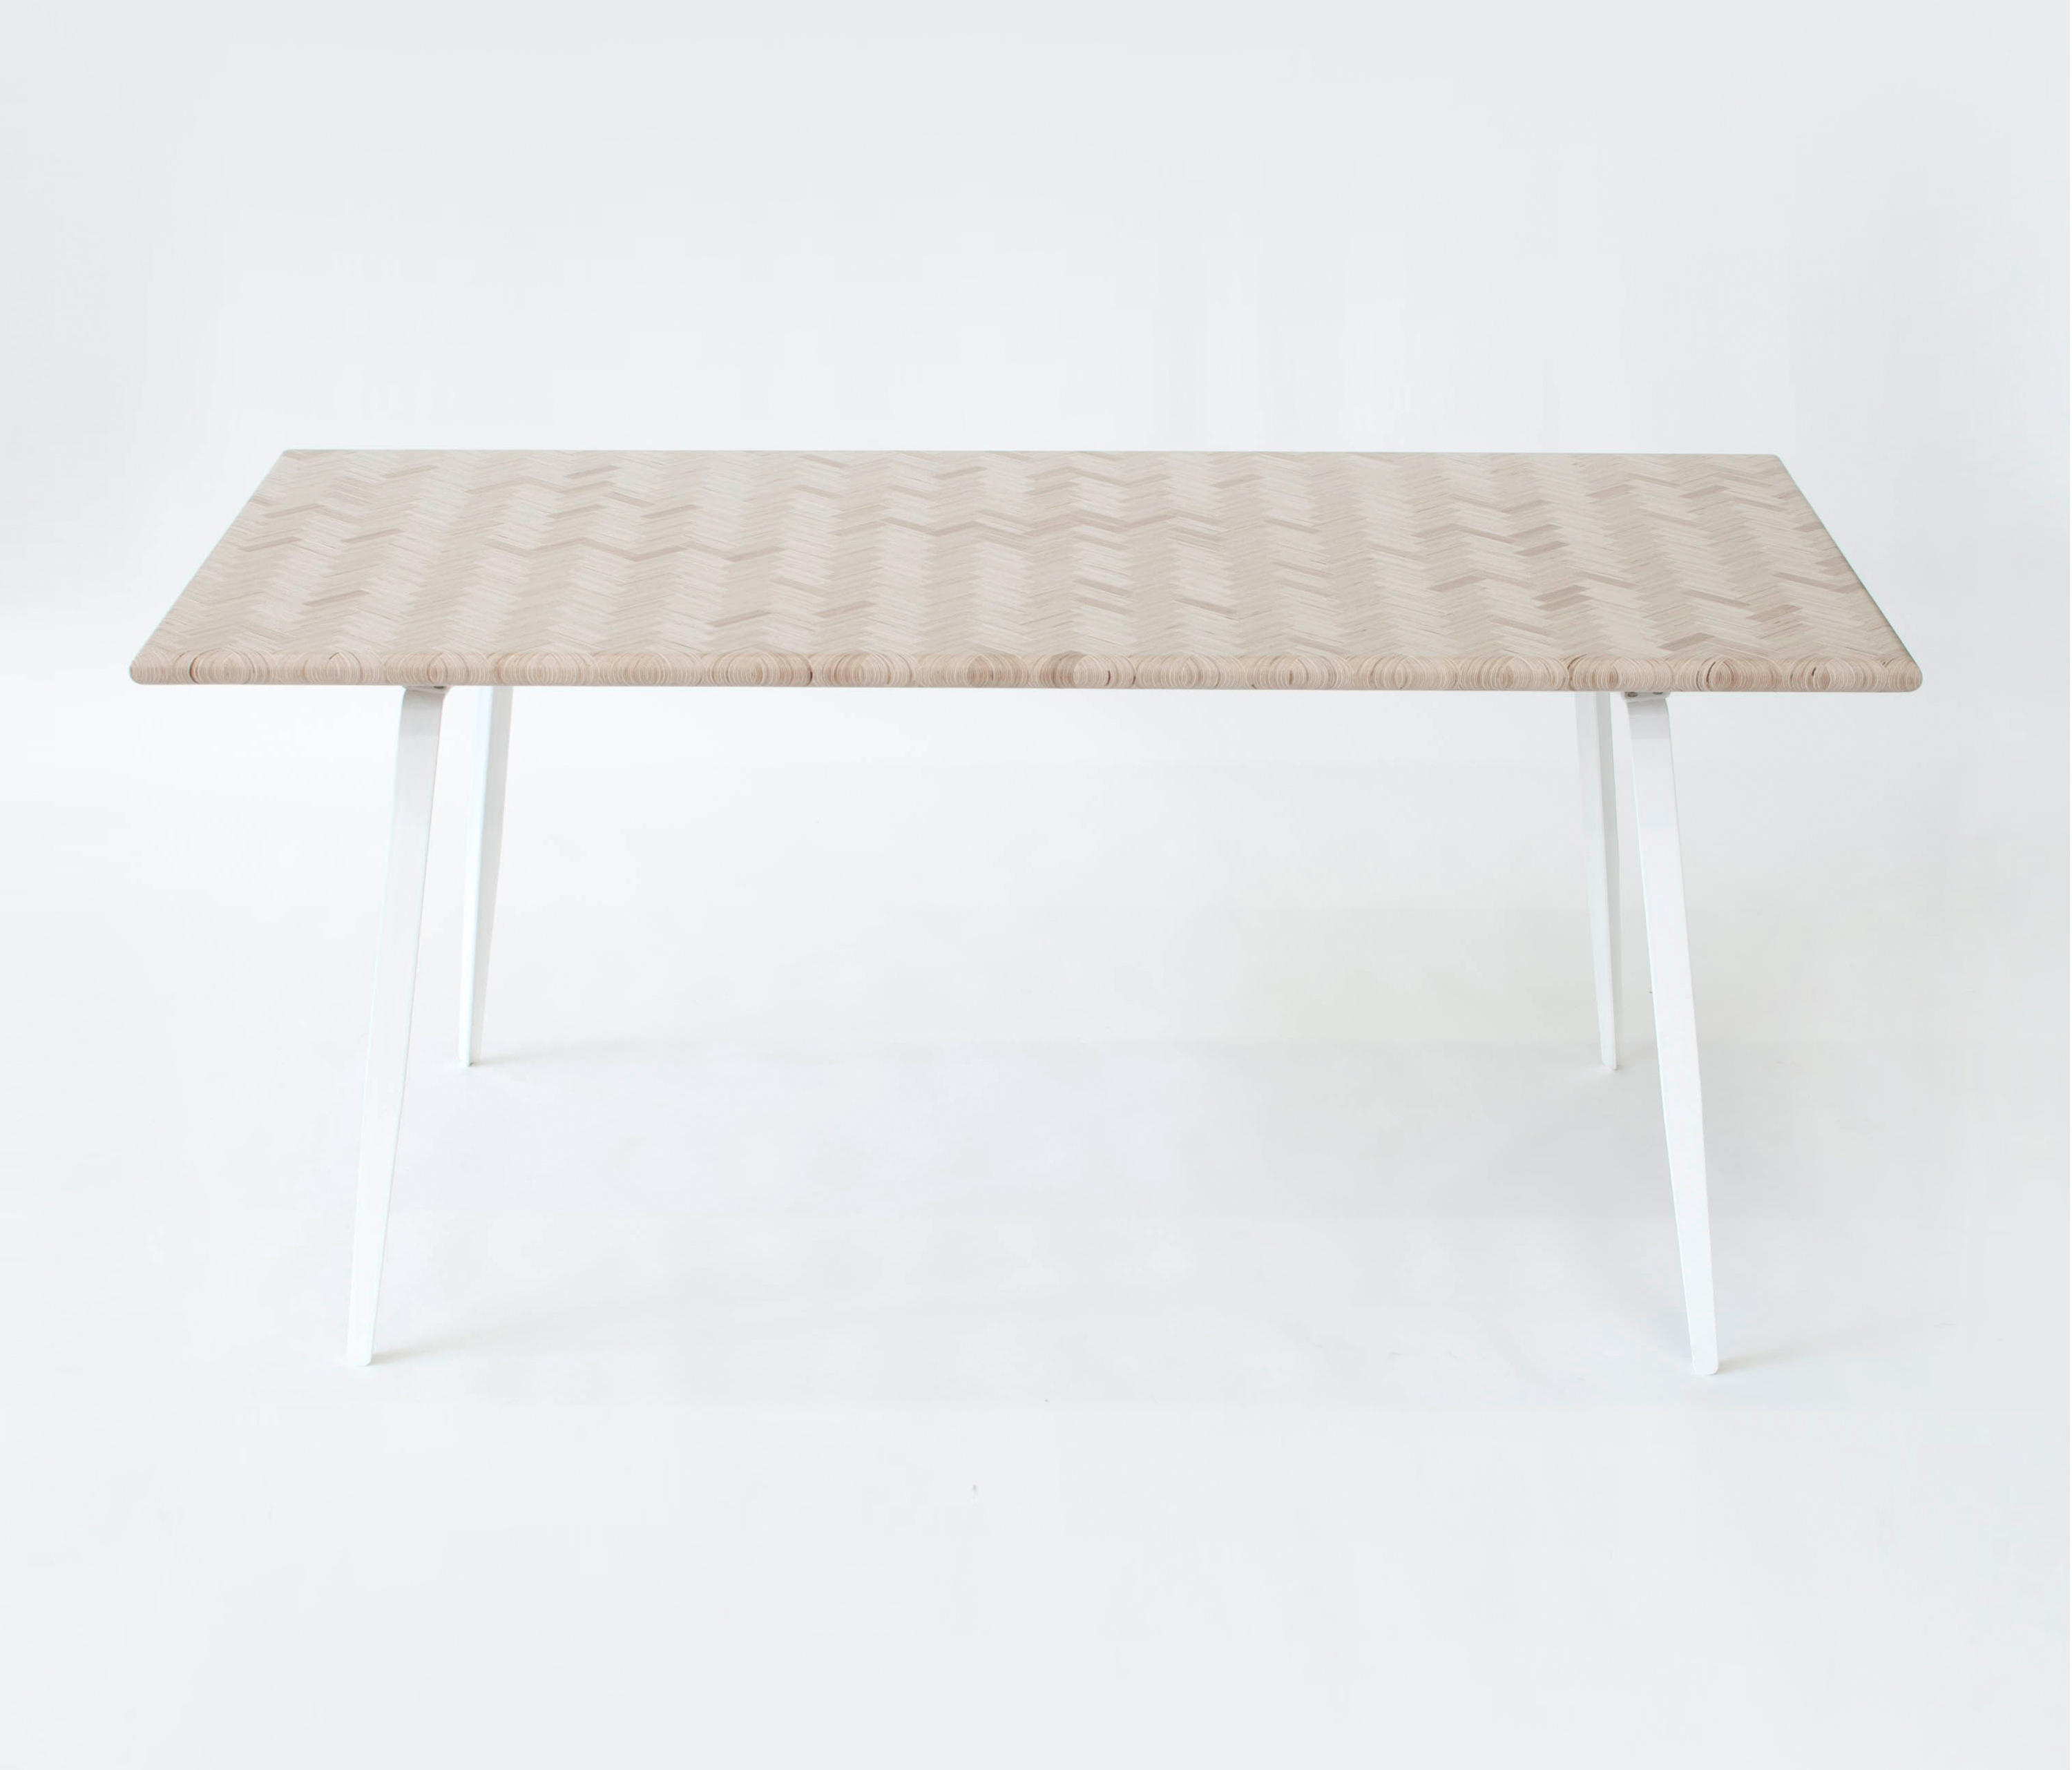 constructed surface table dining tables from tuttobene architonic